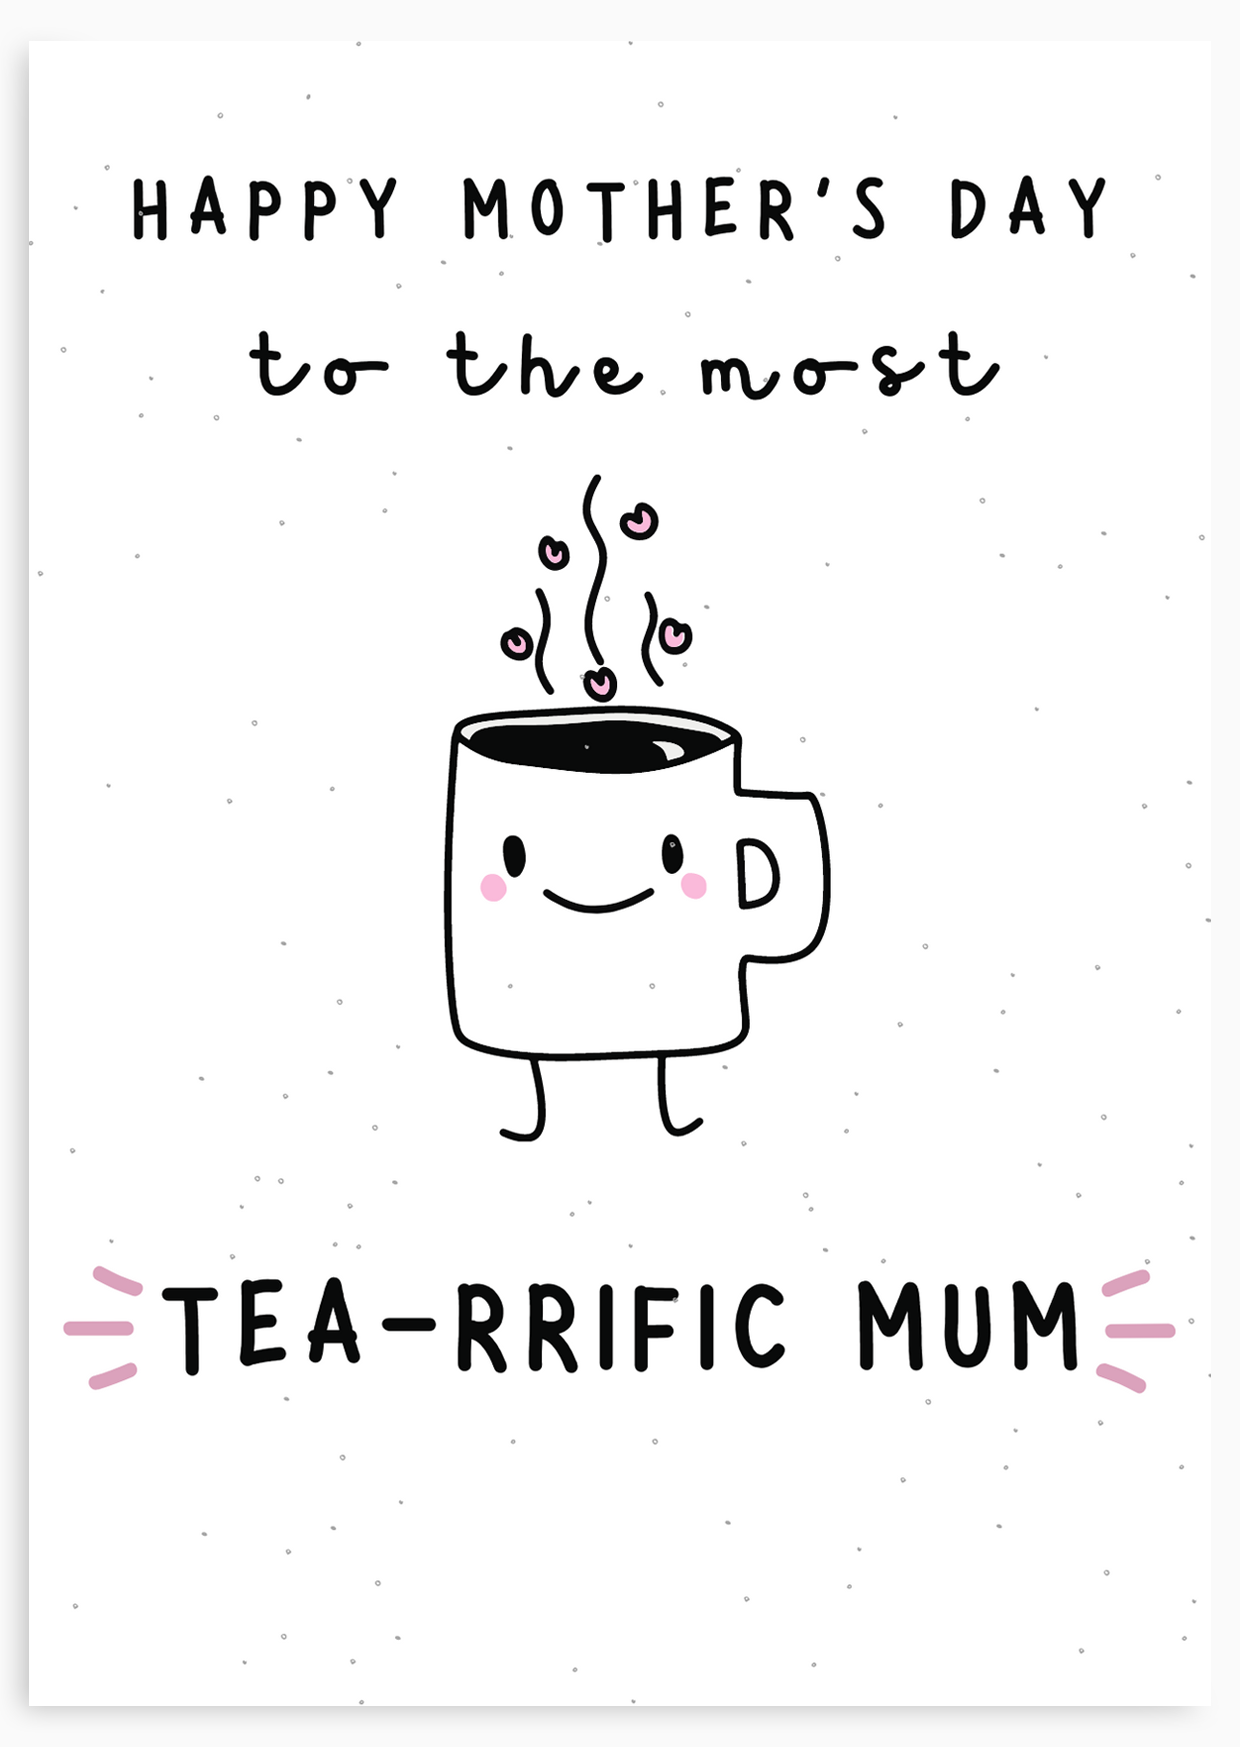 Tea-riffic Mother's Day